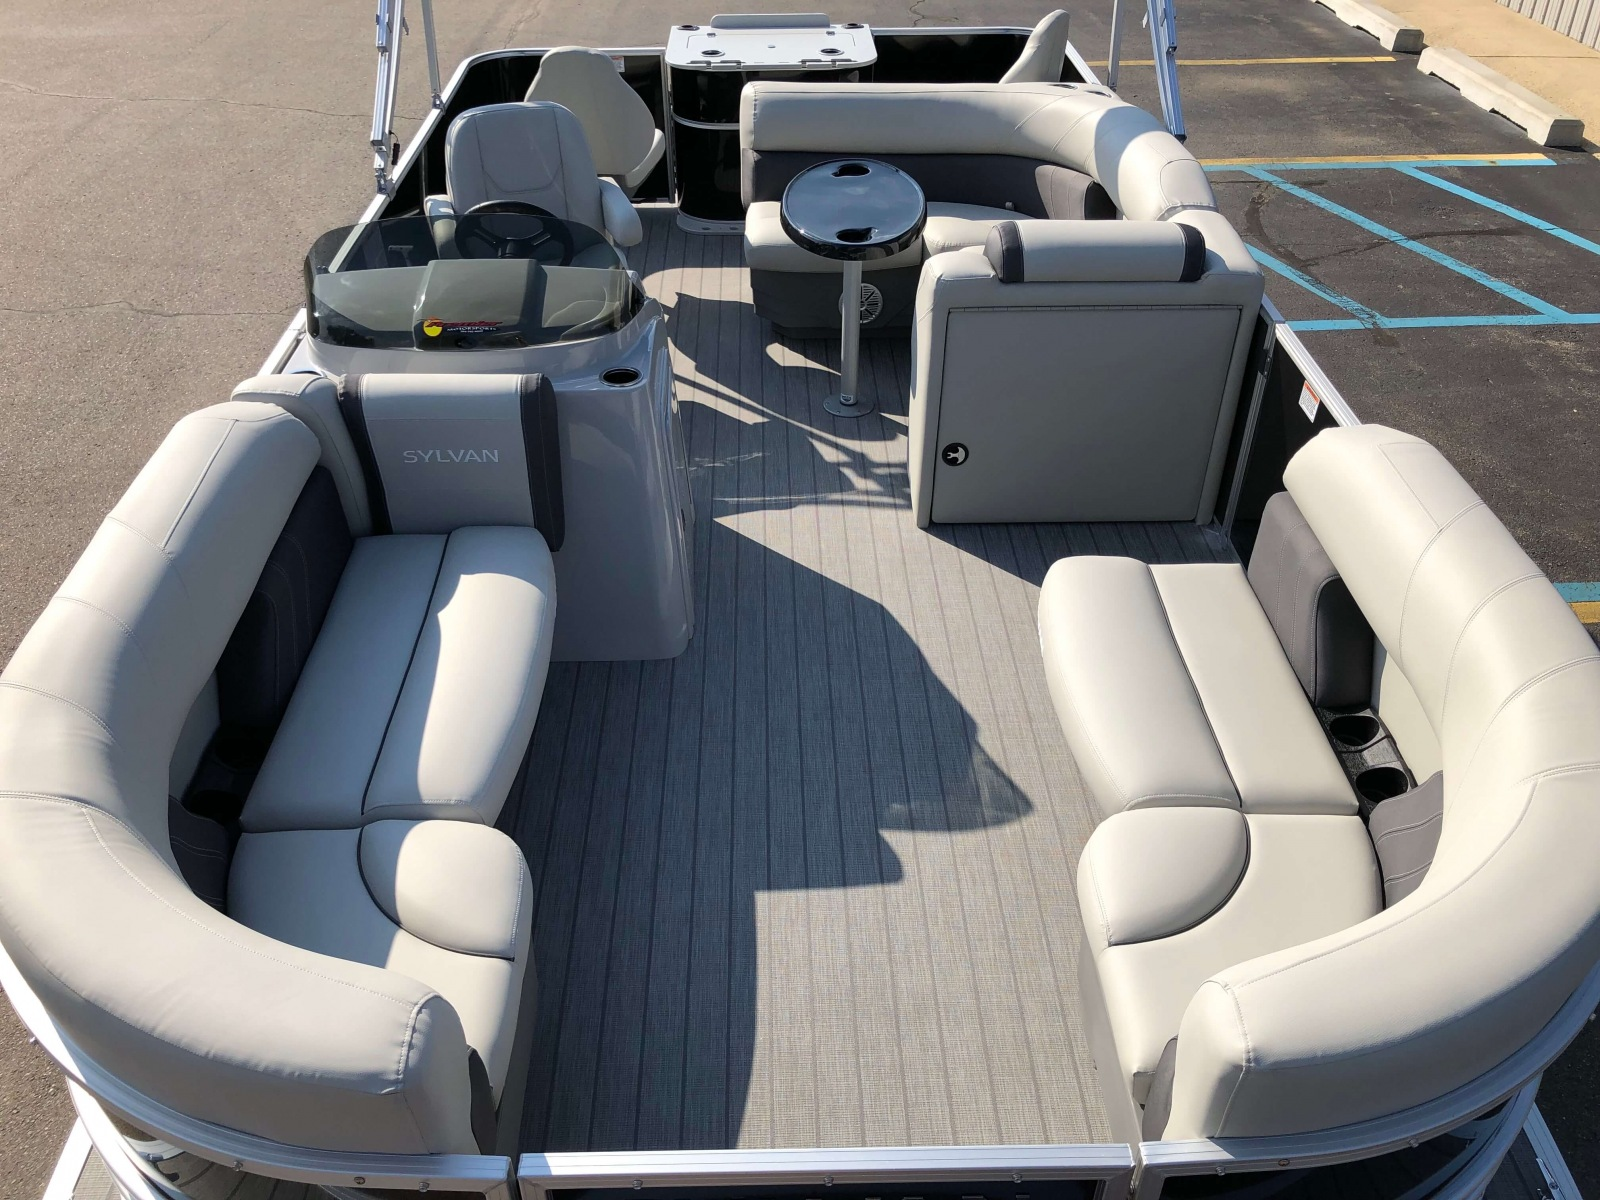 Interior Layout of a 2020 Sylvan Mirage 8520 Cruise-N-Fish Pontoon 1